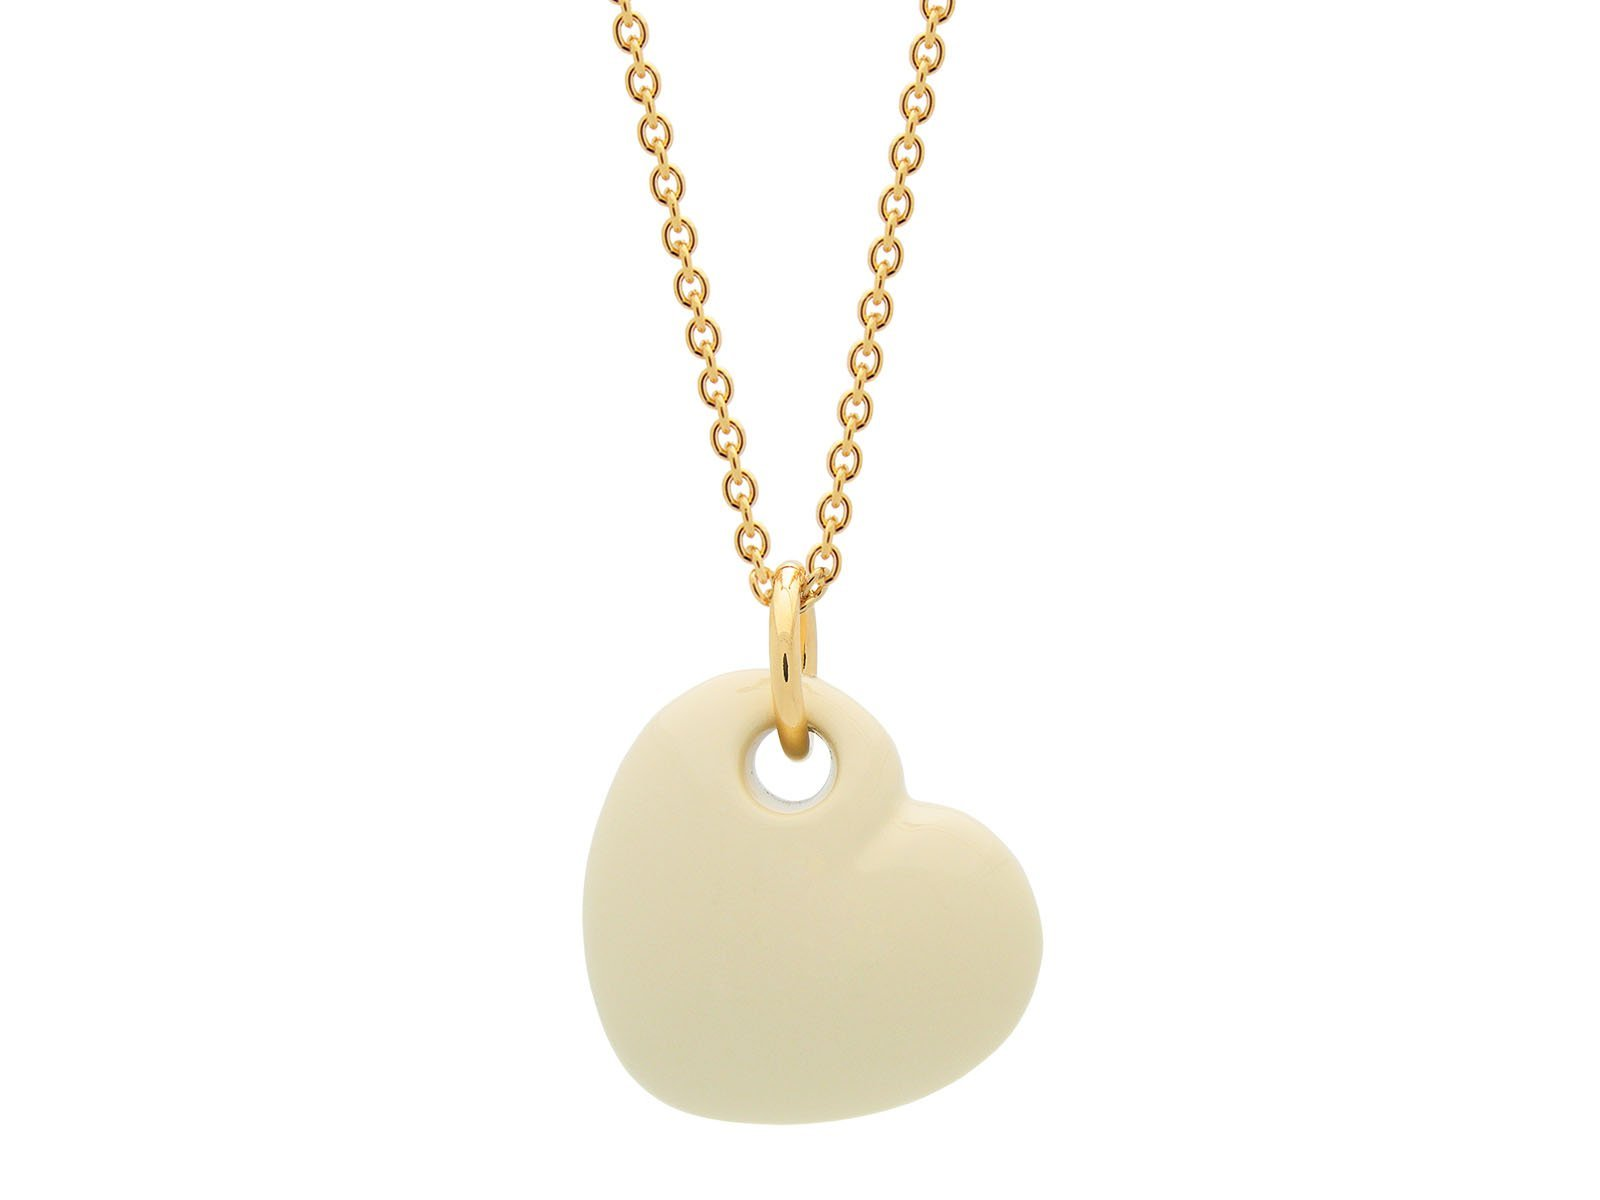 18K Gold Plated Cream Enamel Puffy Heart Necklace, 15 Inches